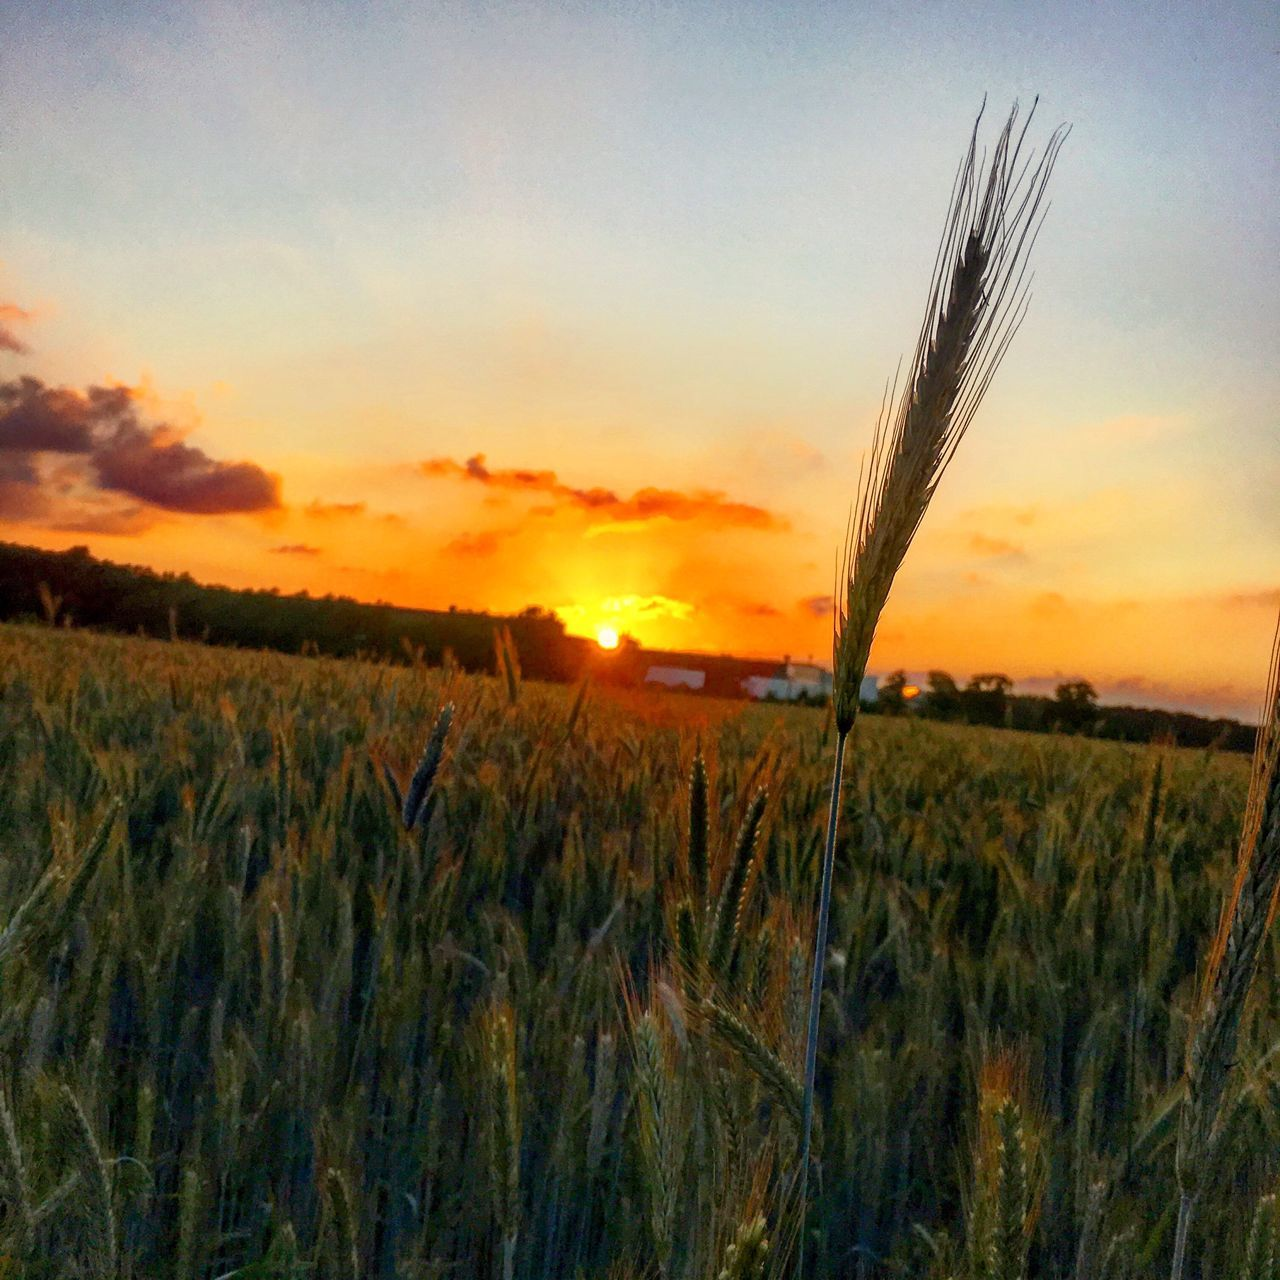 growth, sunset, crop, field, nature, cereal plant, agriculture, tranquil scene, farm, rural scene, beauty in nature, tranquility, wheat, plant, sky, scenics, ear of wheat, outdoors, landscape, no people, straw, grass, close-up, day